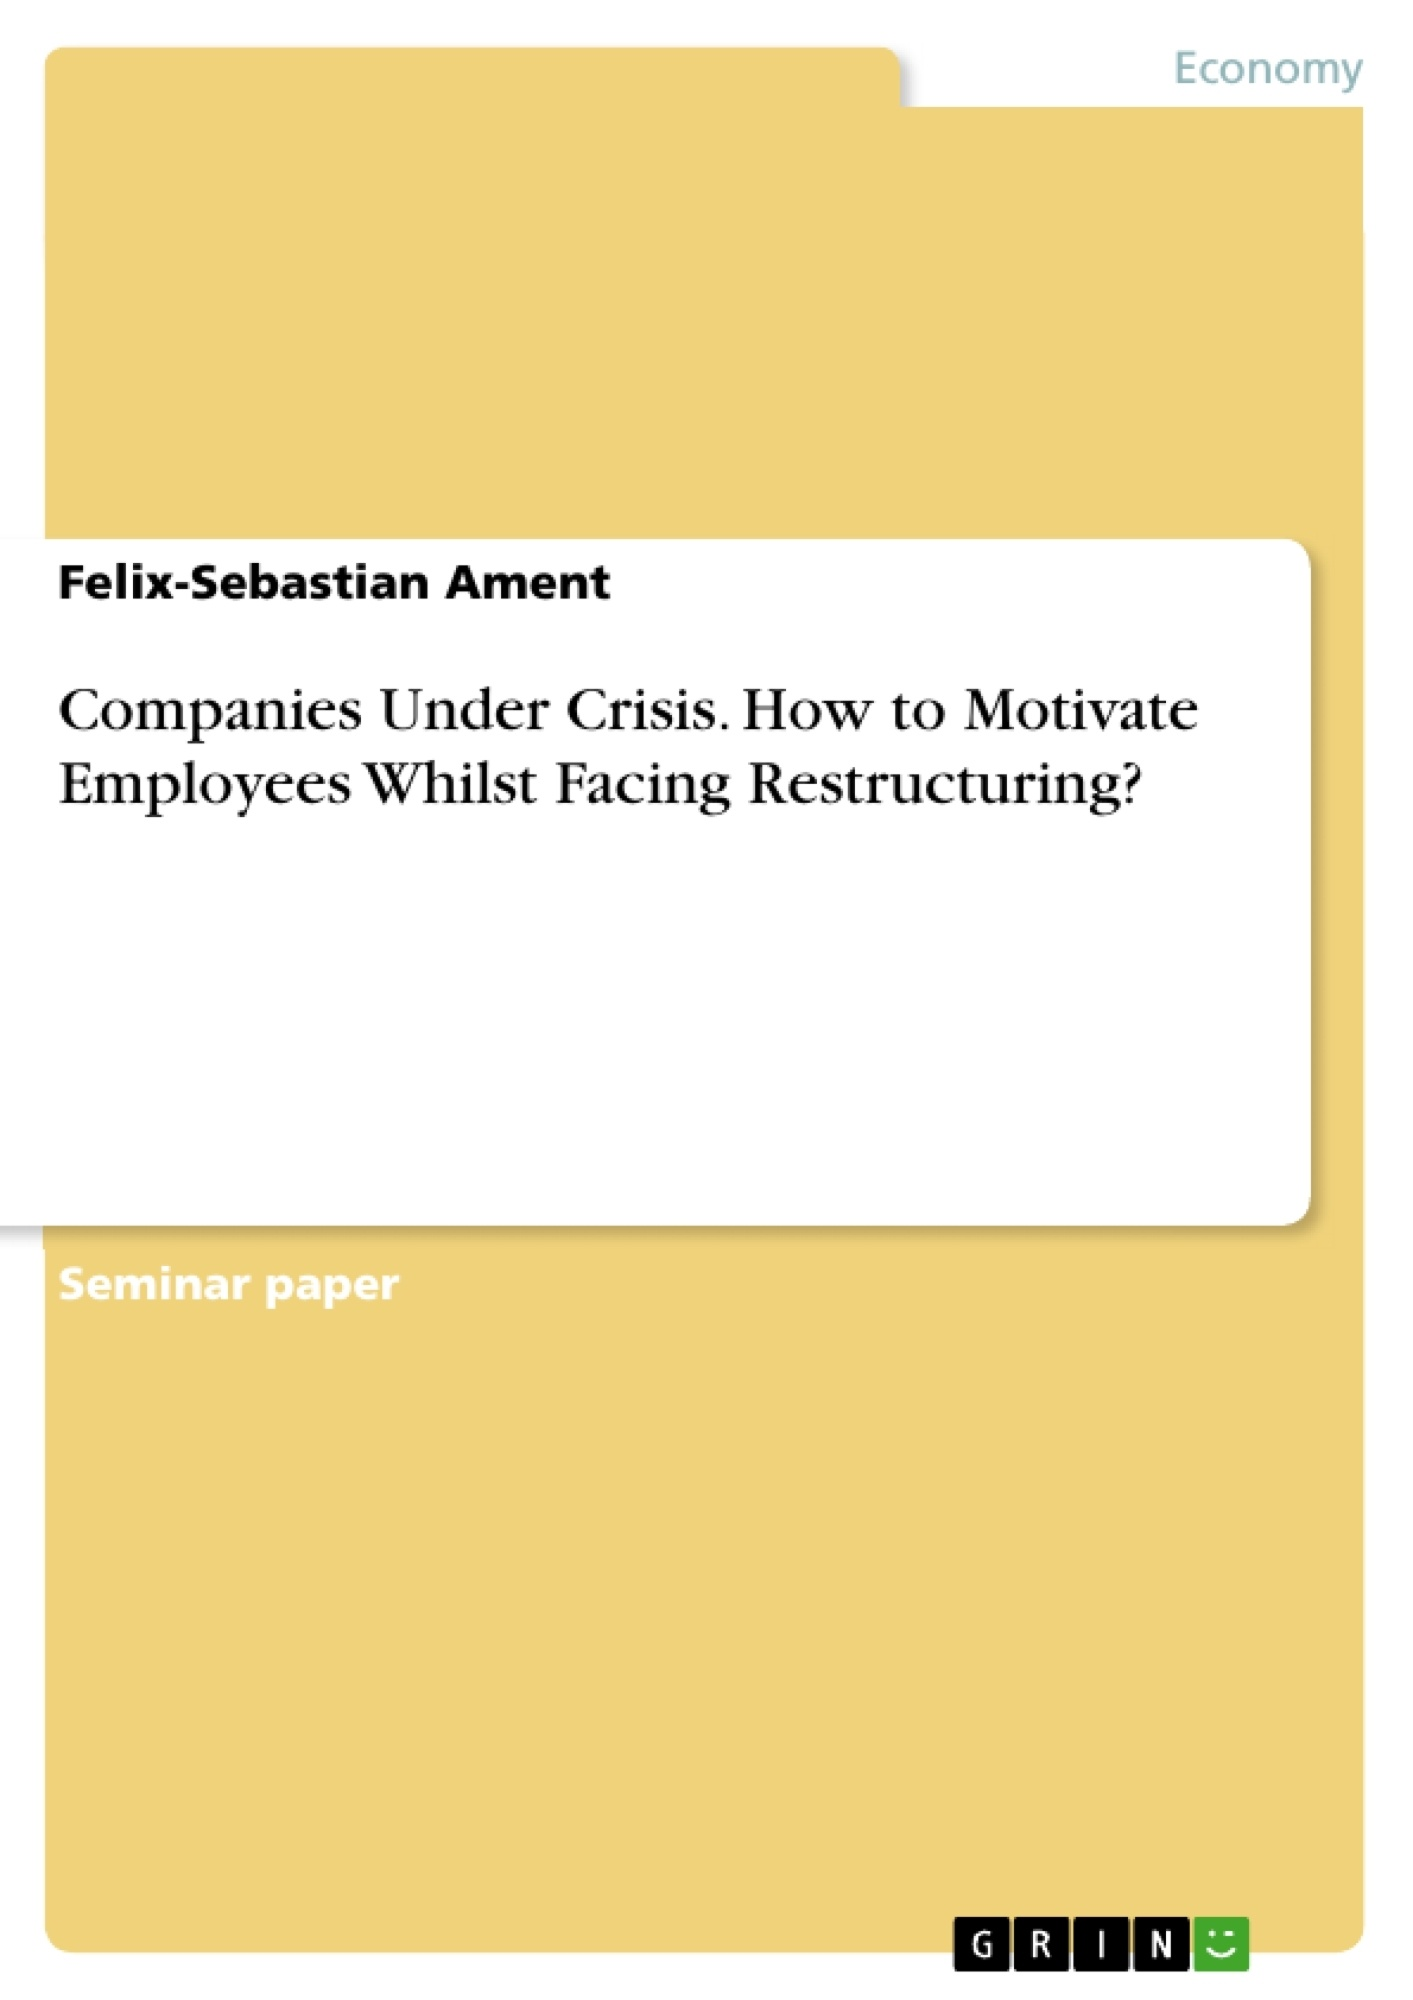 Title: Companies Under Crisis. How to Motivate Employees Whilst Facing Restructuring?